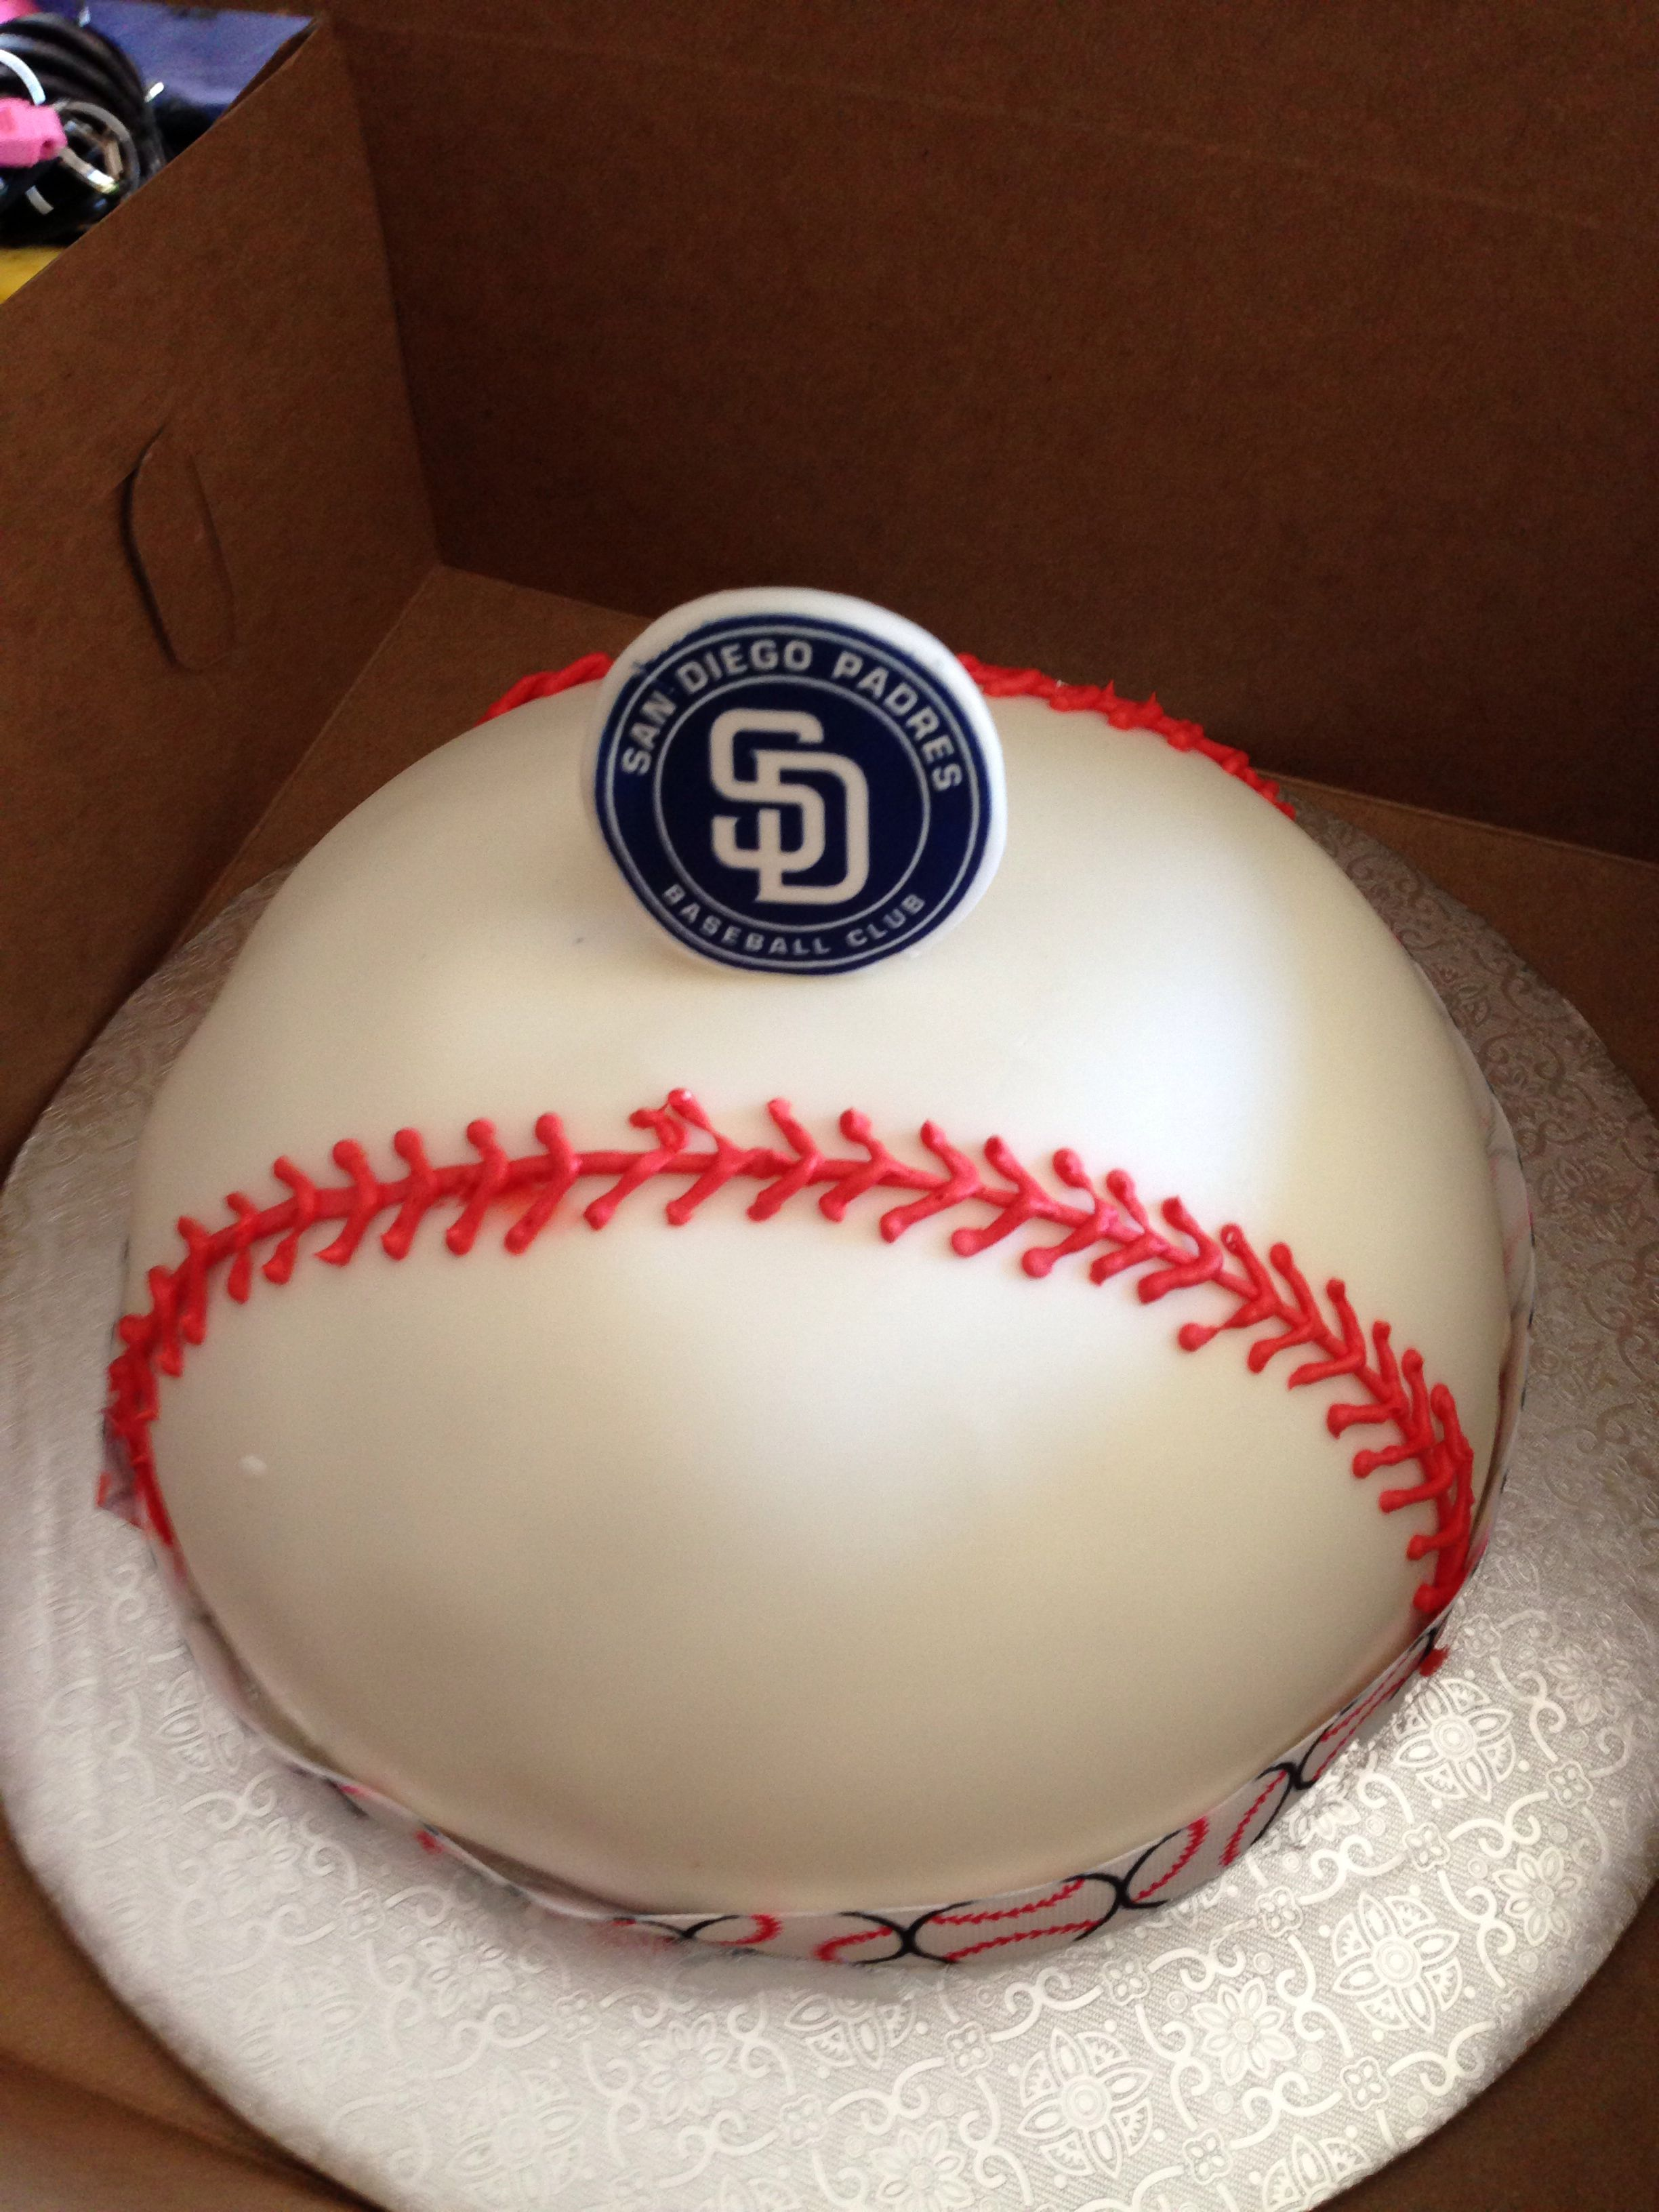 Enjoyable San Diego Padres Team Cake Cake Pop Decorating Cake San Diego Personalised Birthday Cards Veneteletsinfo